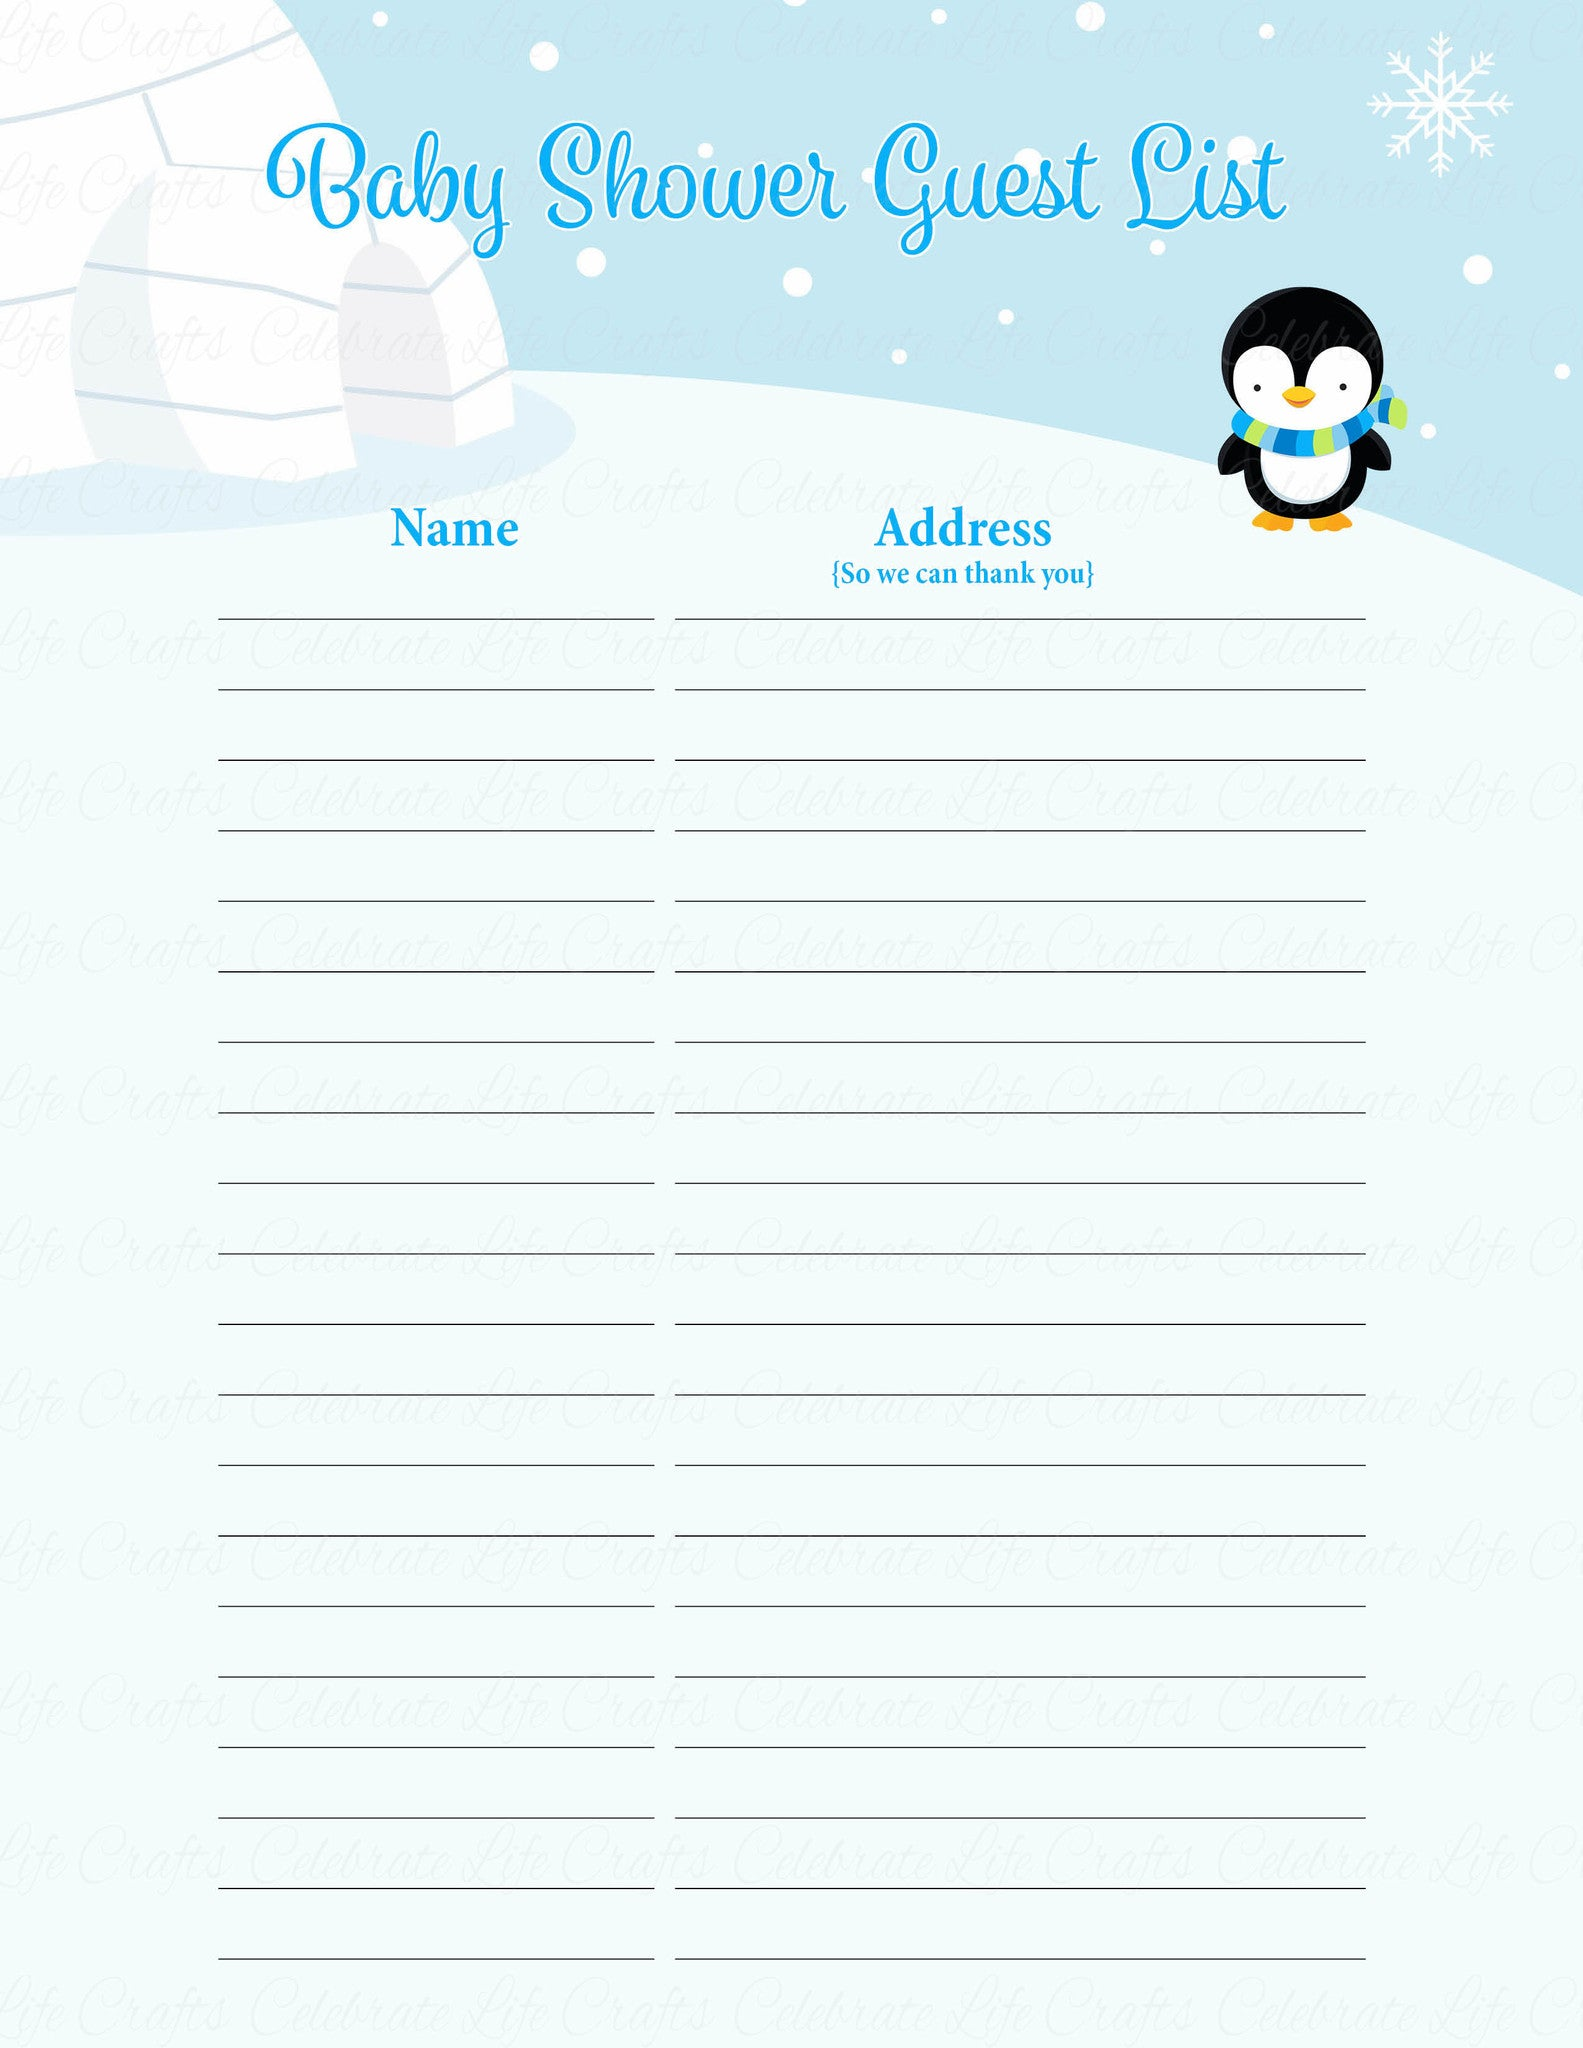 Baby Shower Guest List Set - Winter Baby Shower Theme for ...